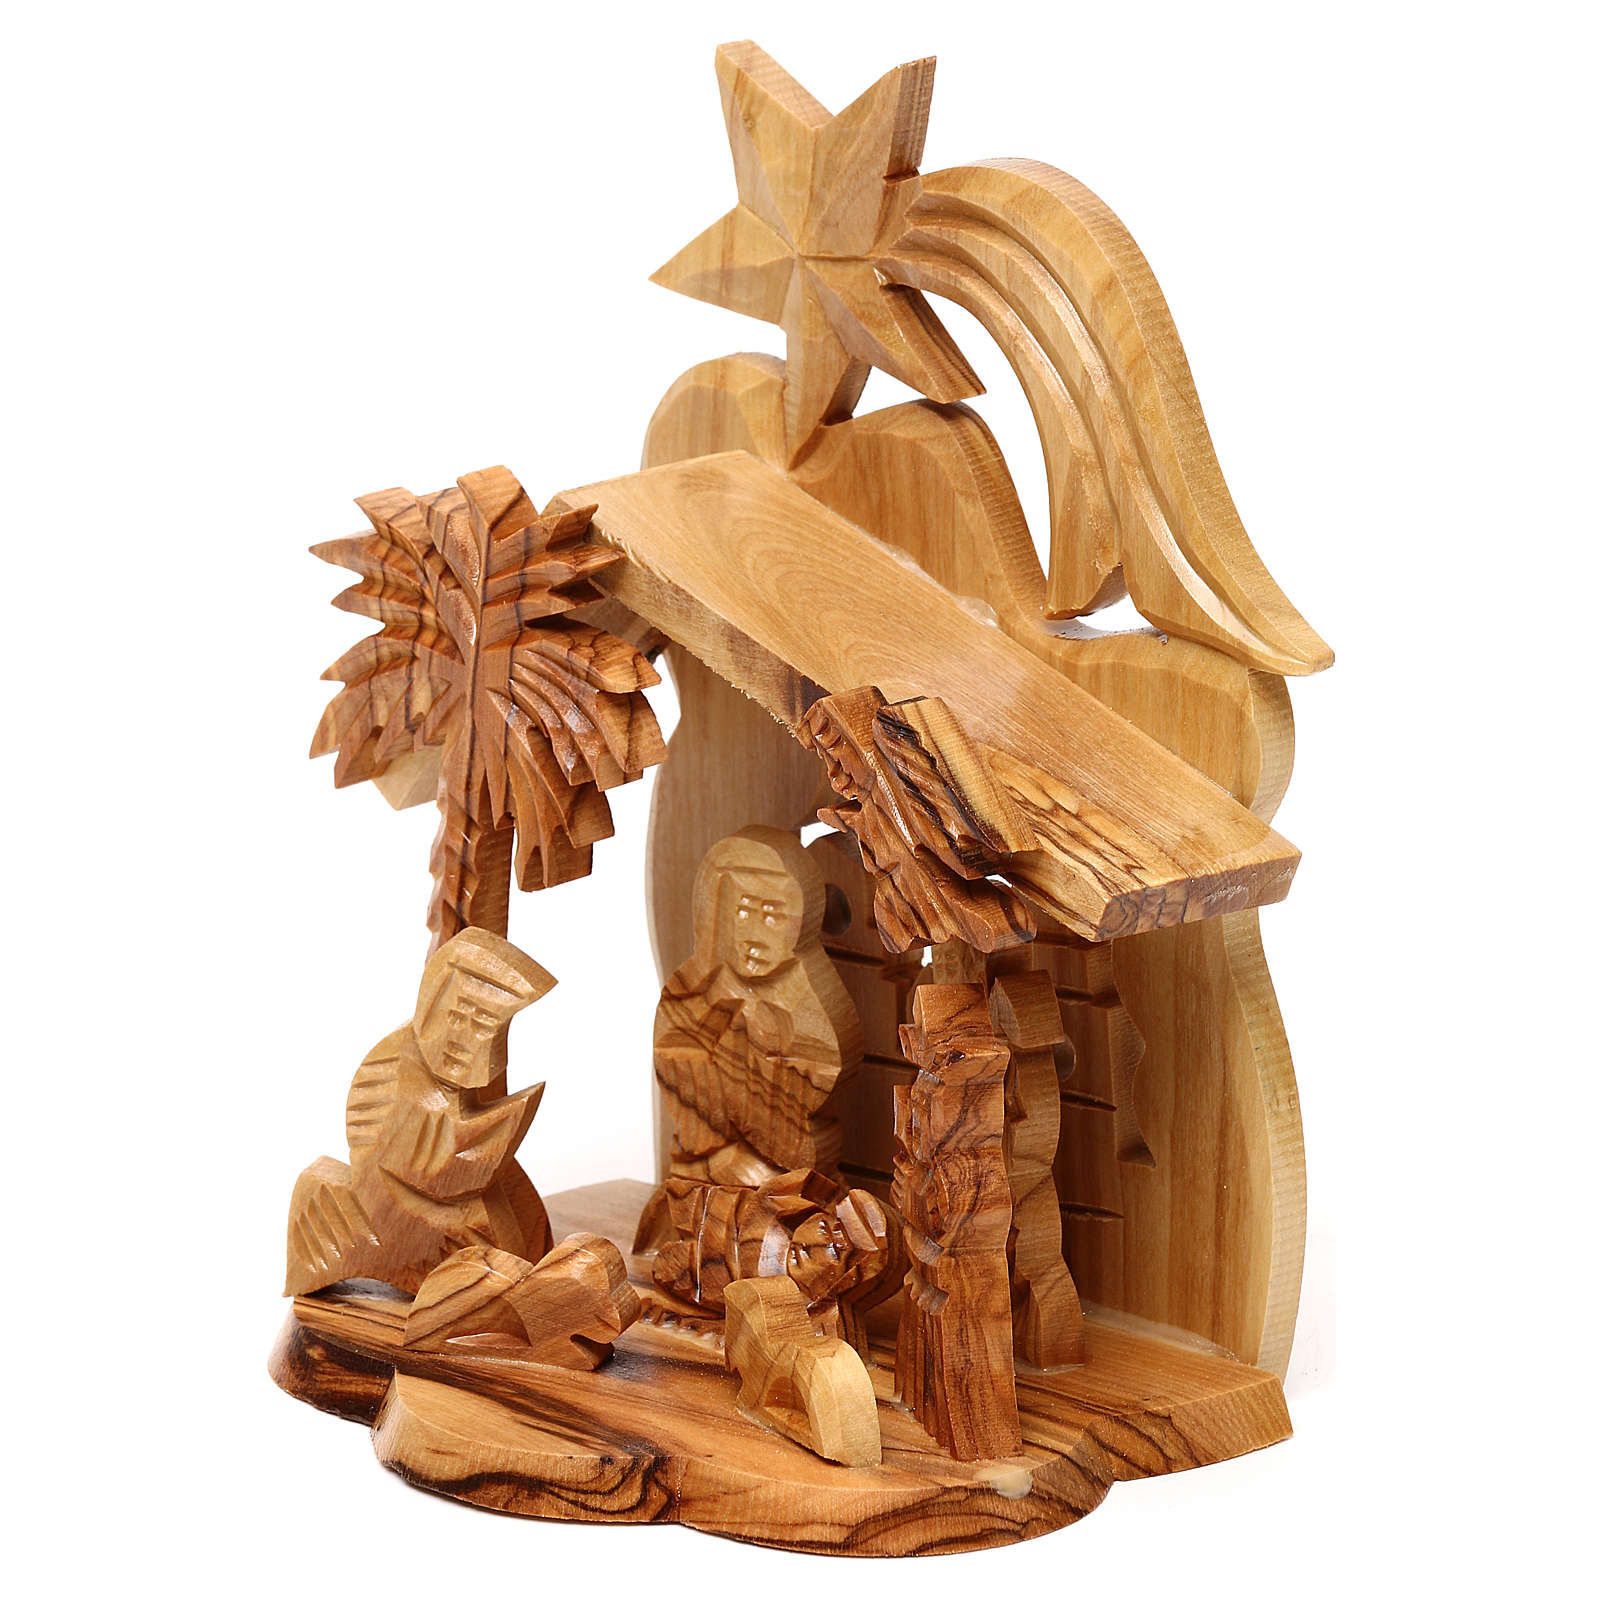 Nativity scene with cave and church in Bethlehem olive wood, stylized 15x10x10 cm 4